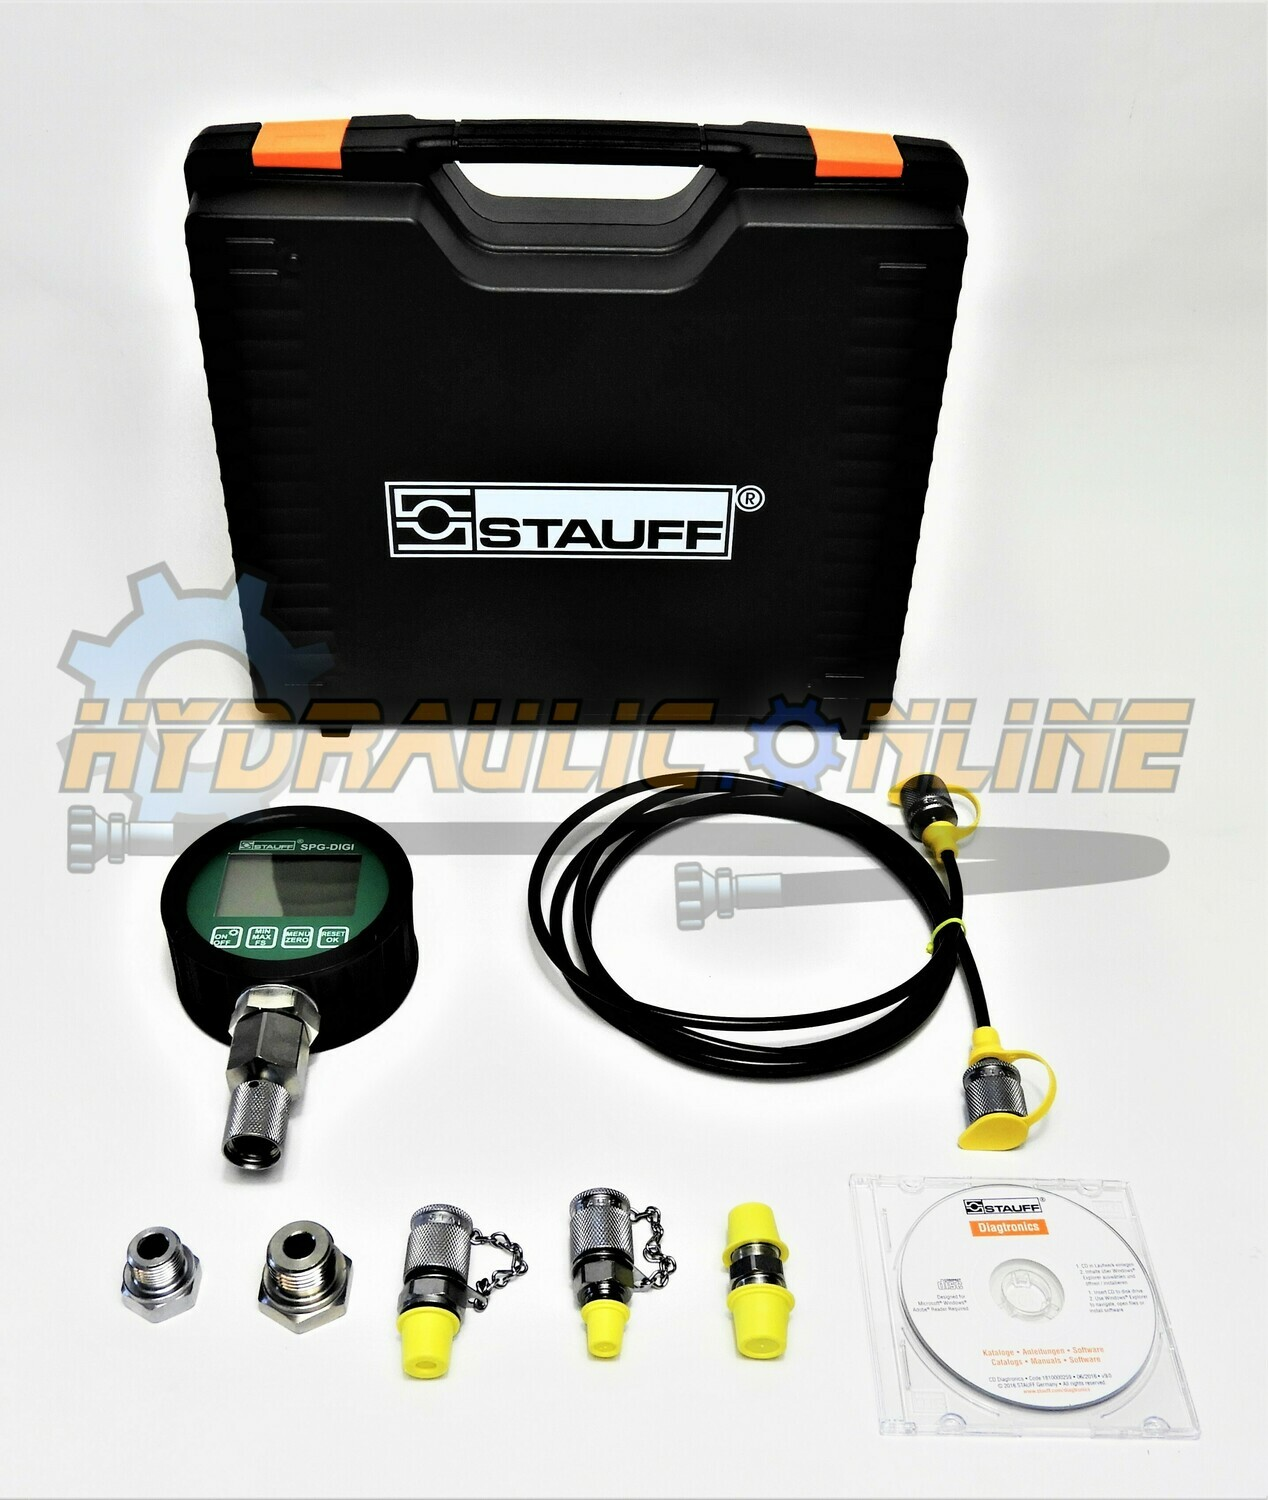 STAUFF Digital Pressure Test Kit 8,800 PSI 2M Test Hose.